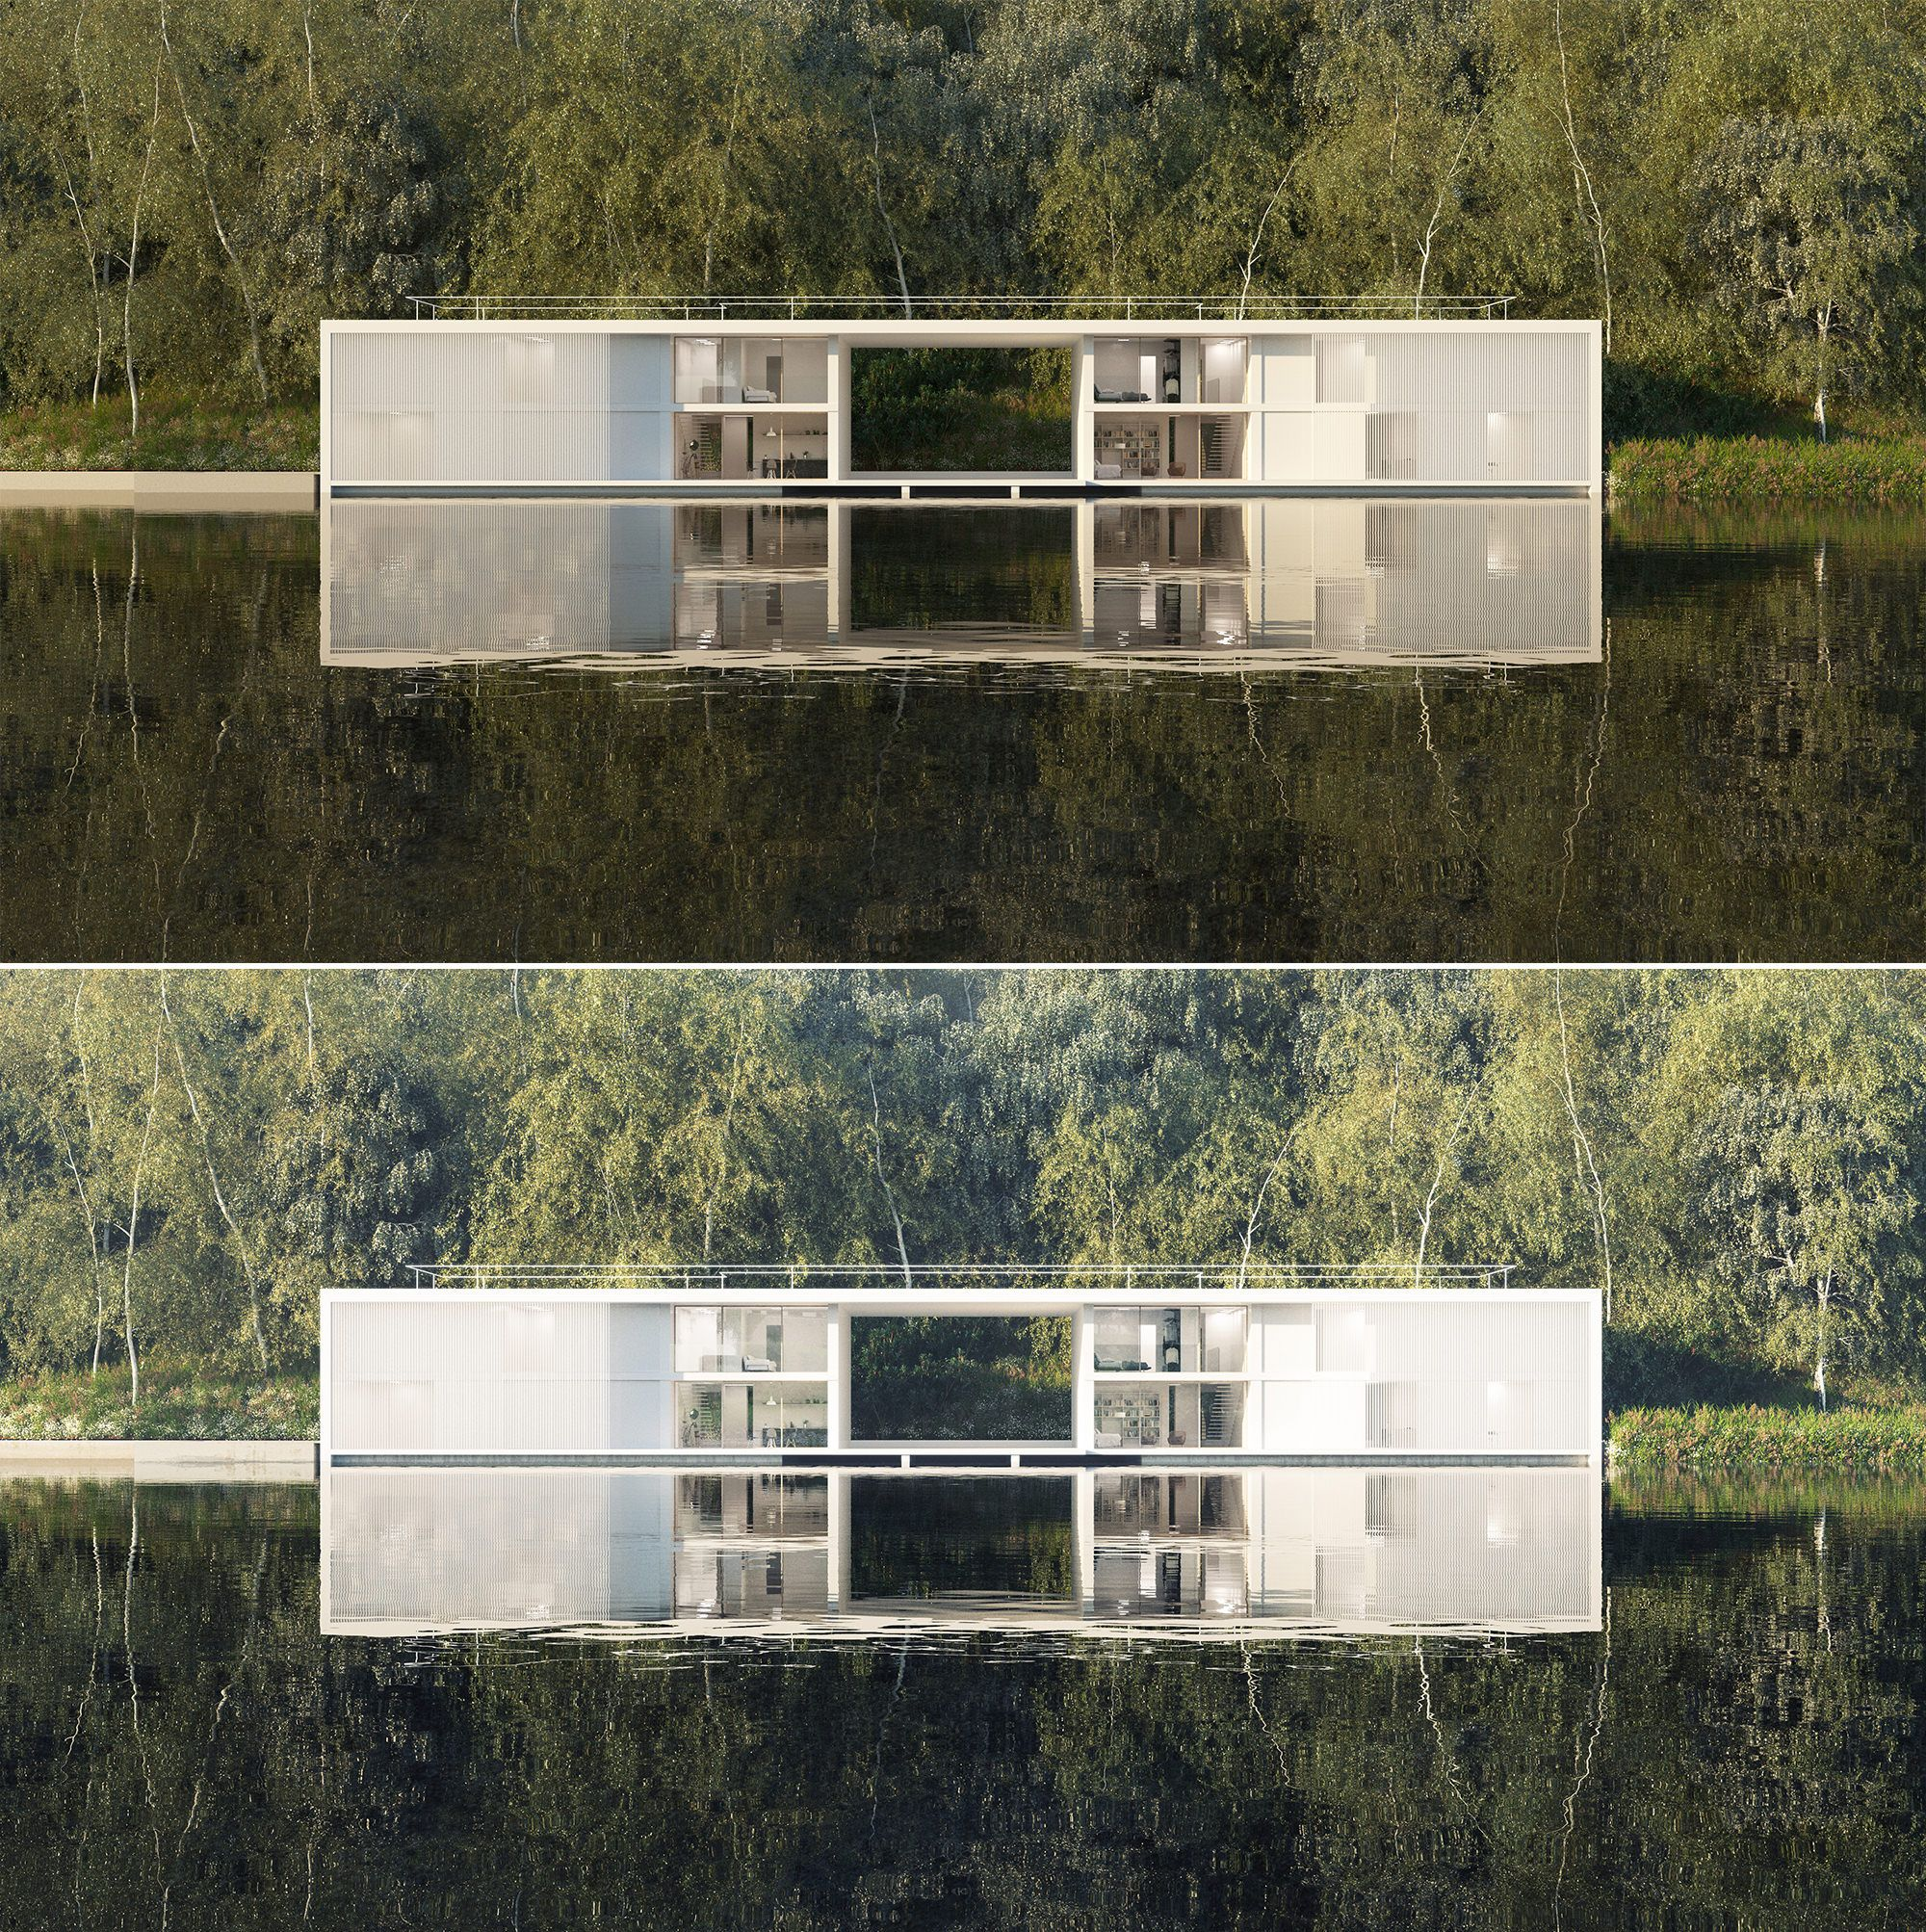 Giona Andreani Showcased His First Attempt With Corona Renderer Two Weeks Ago Which Also Awar 3d Architectural Visualization Concept Architecture Architecture